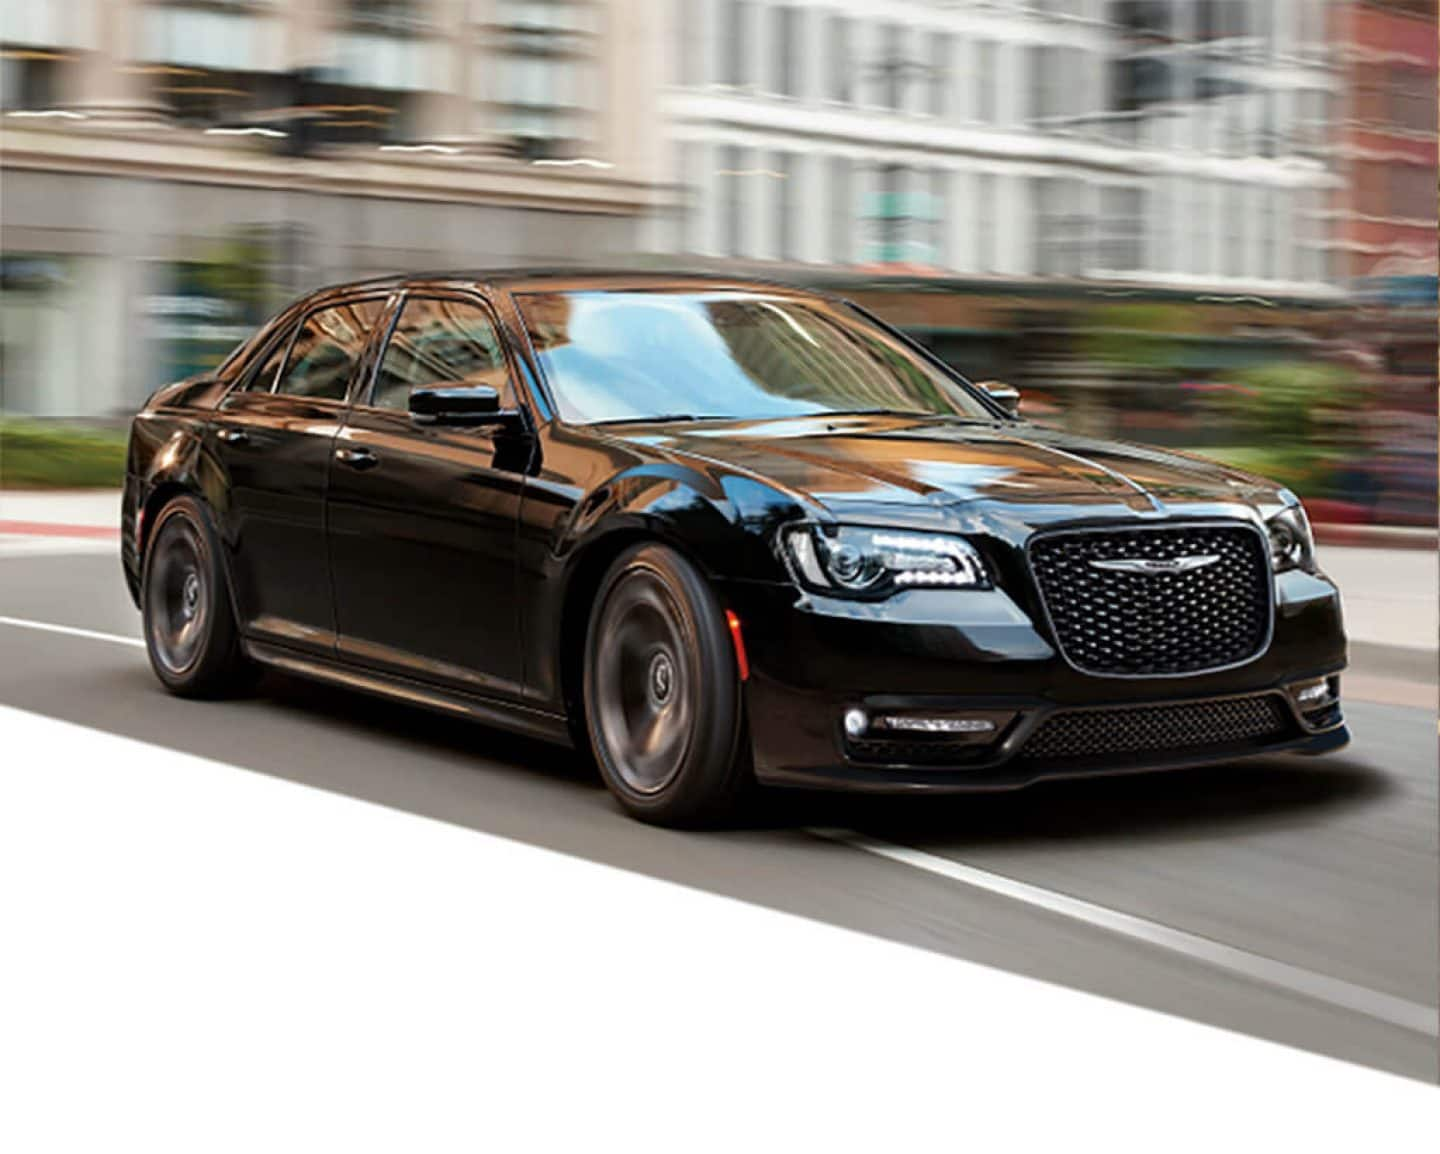 41 Best 2019 Chrysler 300 Srt8 Review